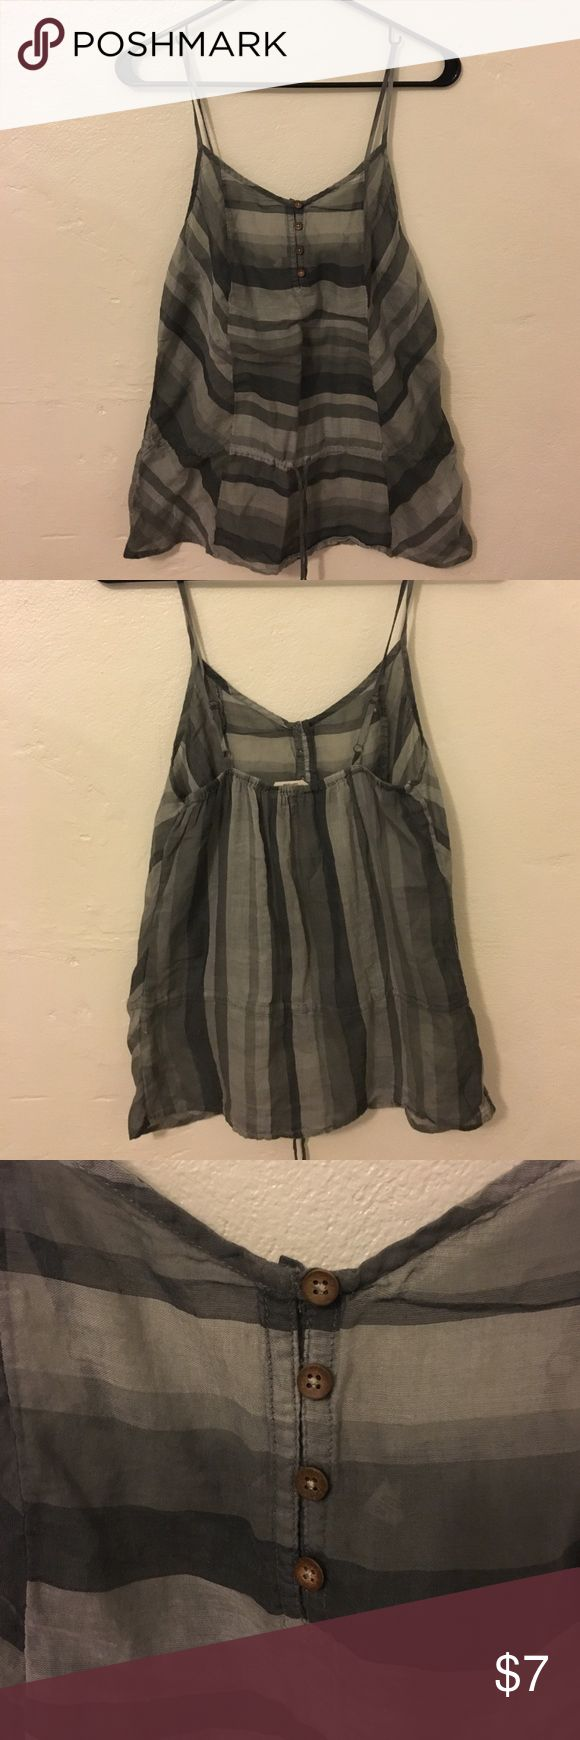 Lightweight, striped tank 🎉 Different tones of grey striped tank.  Cinched waist determined by belt. Button bust. Adjustable straps Old Navy Tops Tank Tops